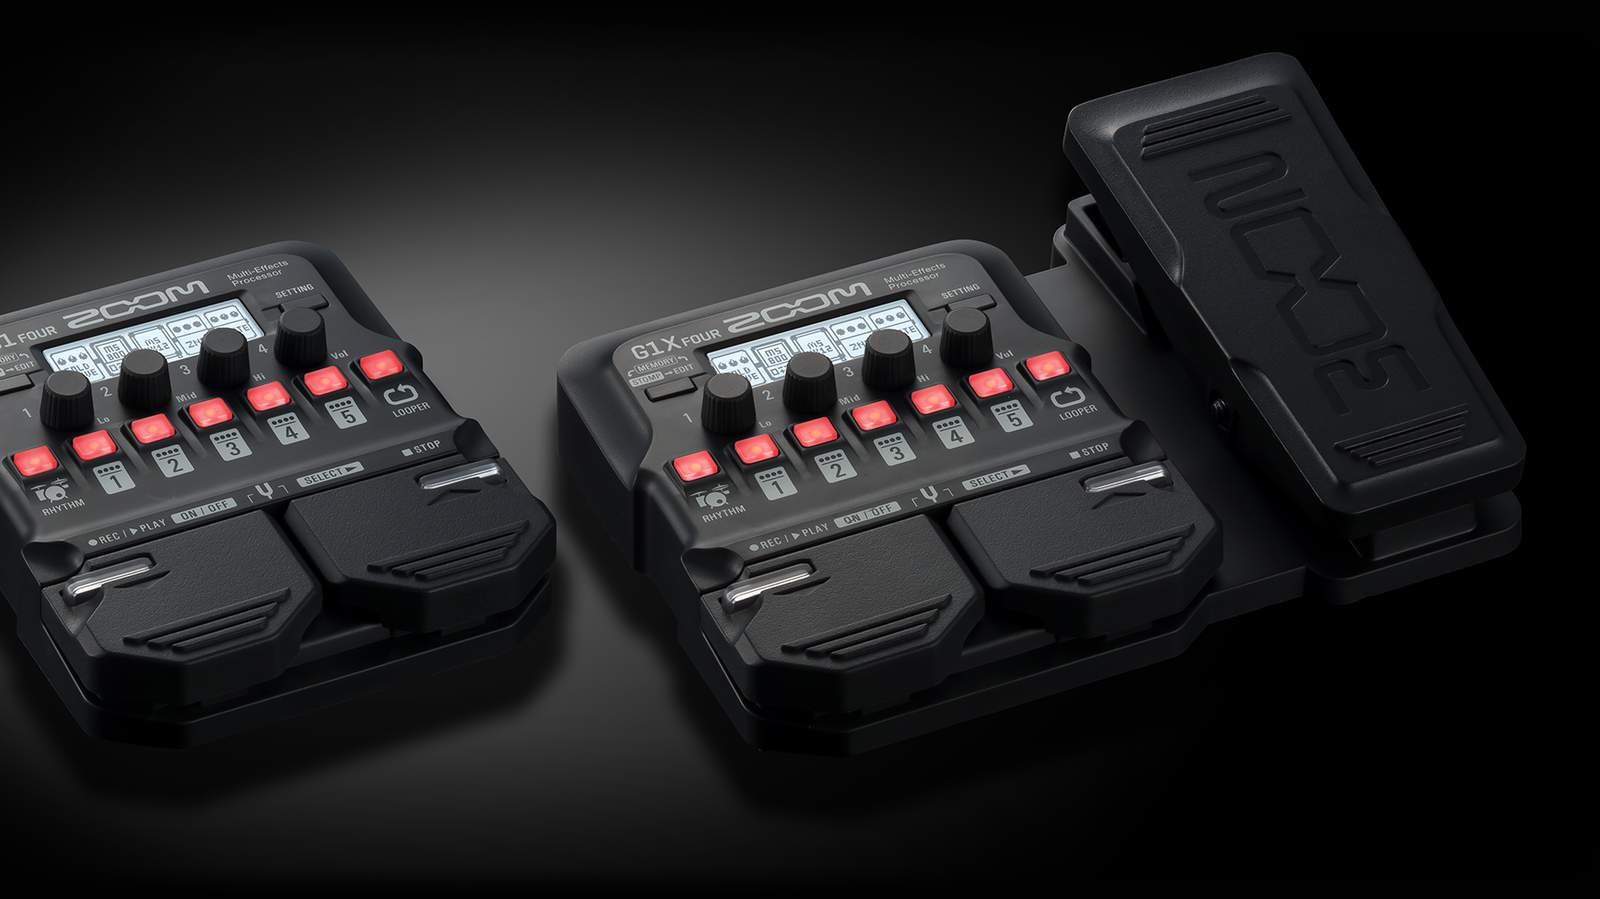 G1 Four pedals